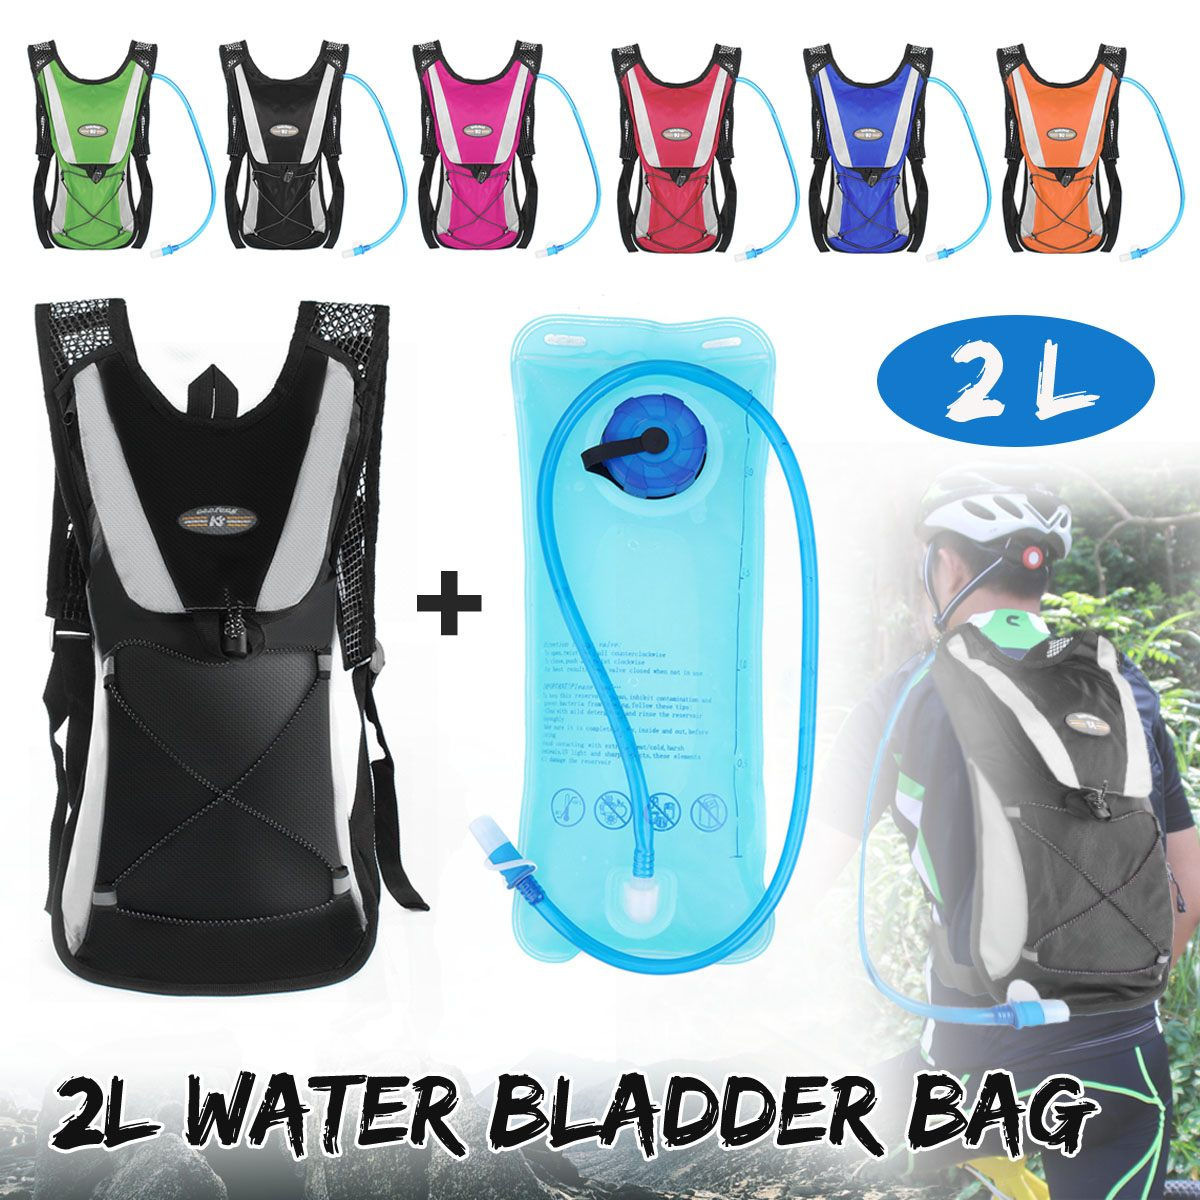 2L 6 Color Outdoor Portable Water Bladder Bag Hydration Backpack Sports Camping Hiking For Cycling Bicycle Hiking Bike Mountain2L 6 Color Outdoor Portable Water Bladder Bag Hydration Backpack Sports Camping Hiking For Cycling Bicycle Hiking Bike Mountain